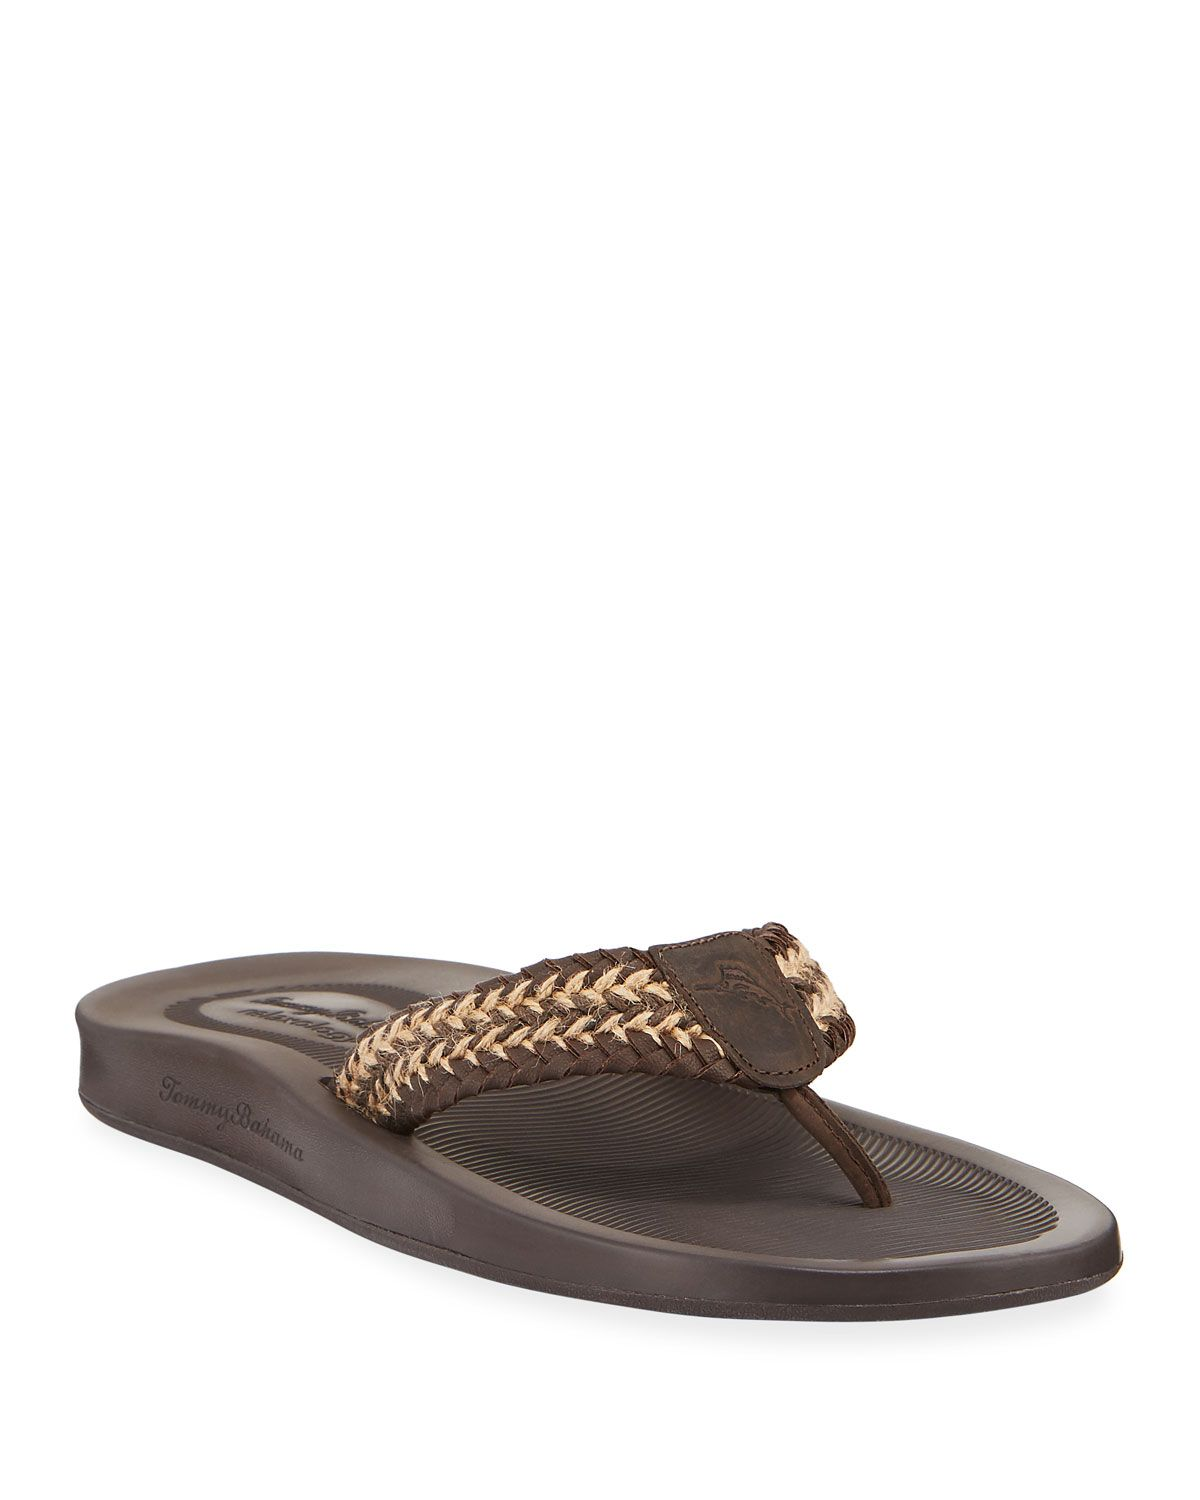 8d3e1c66447f8 TOMMY BAHAMA MEN'S ELIO SPRING LEATHER THONG SANDALS. #tommybahama #shoes